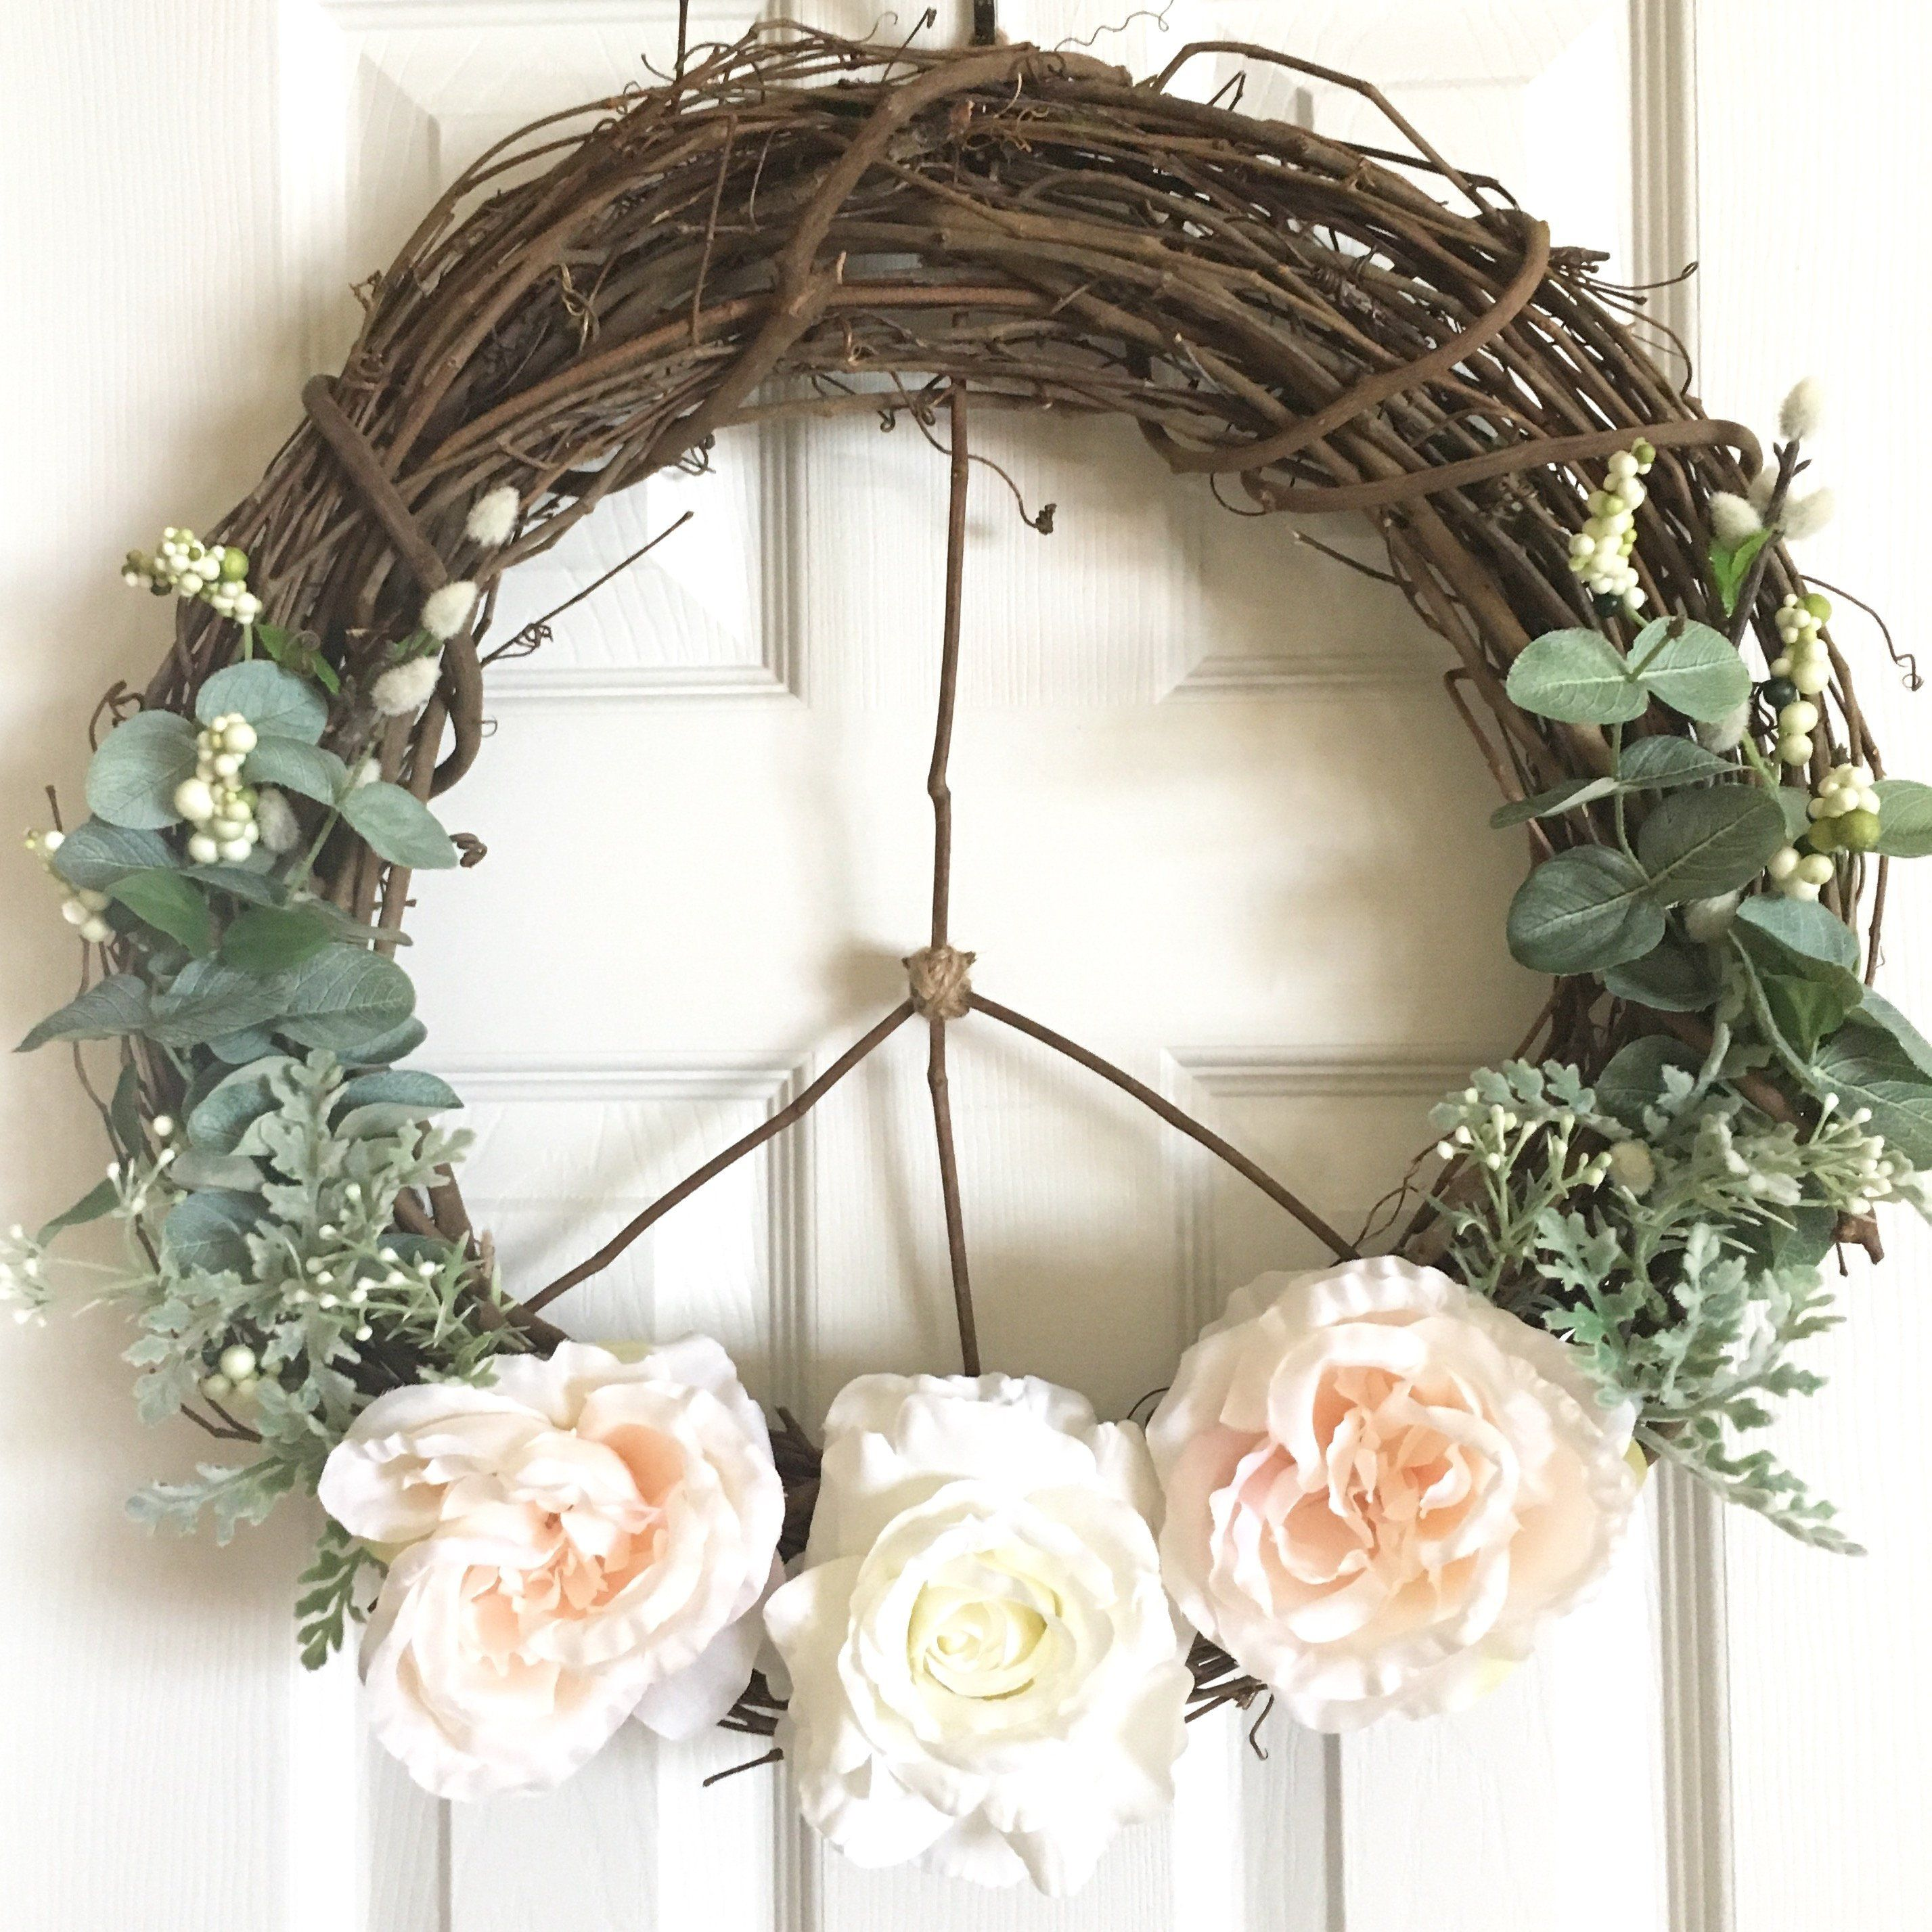 Pin On Miller Wreath Designs